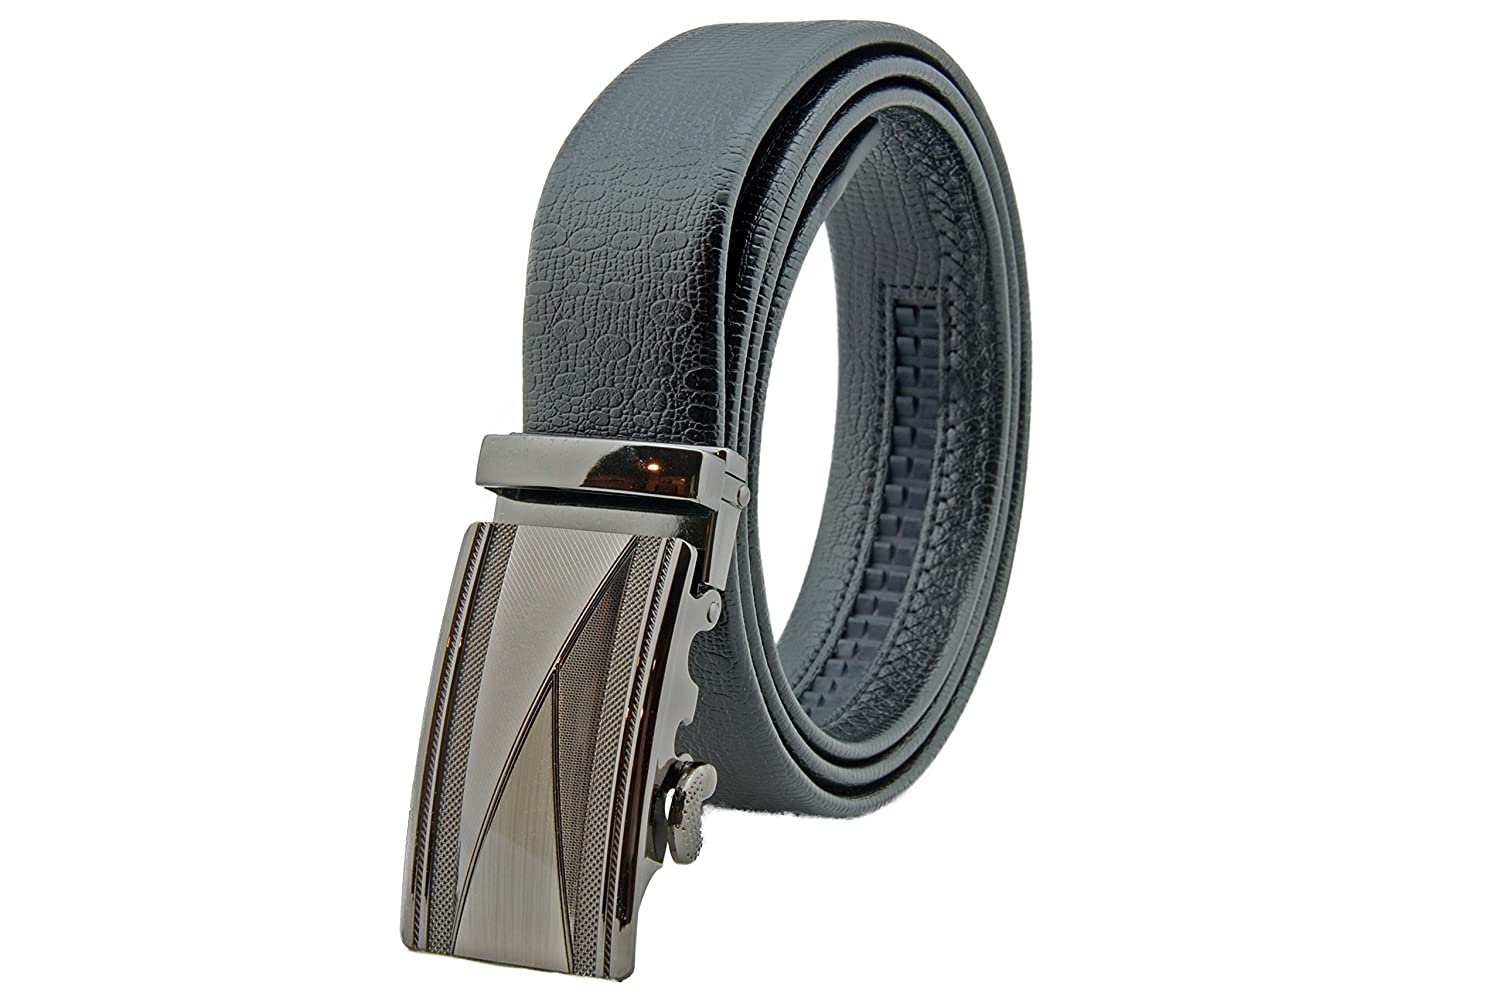 Automatic Buckle Celini Men/'s Leather Ratchet Belt Adjustable Belt Without Holes